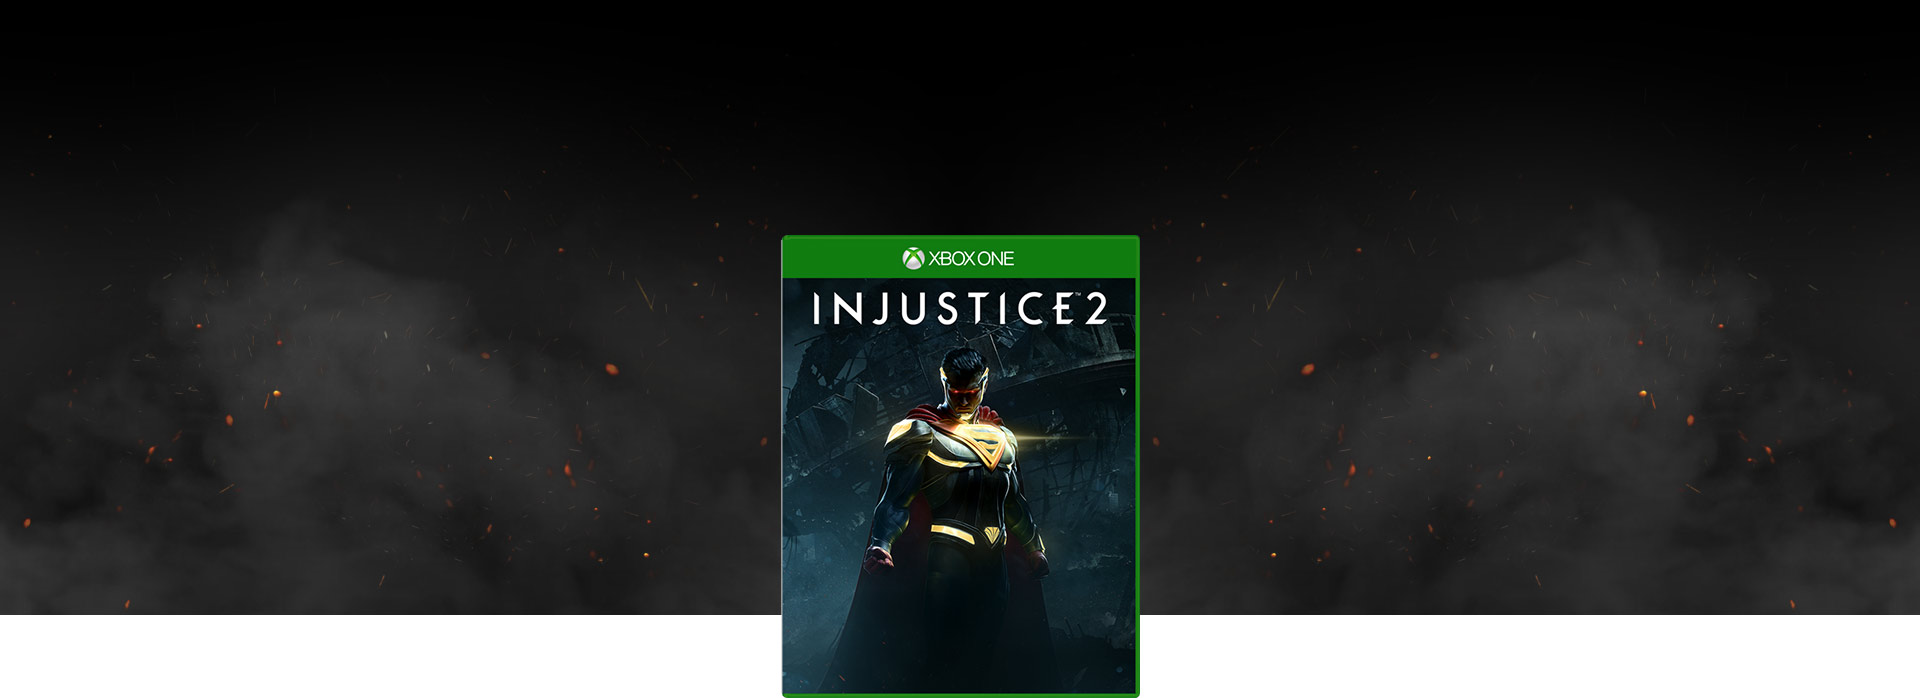 Boxshot of Injustice 2, on a dark smoky background with red embers